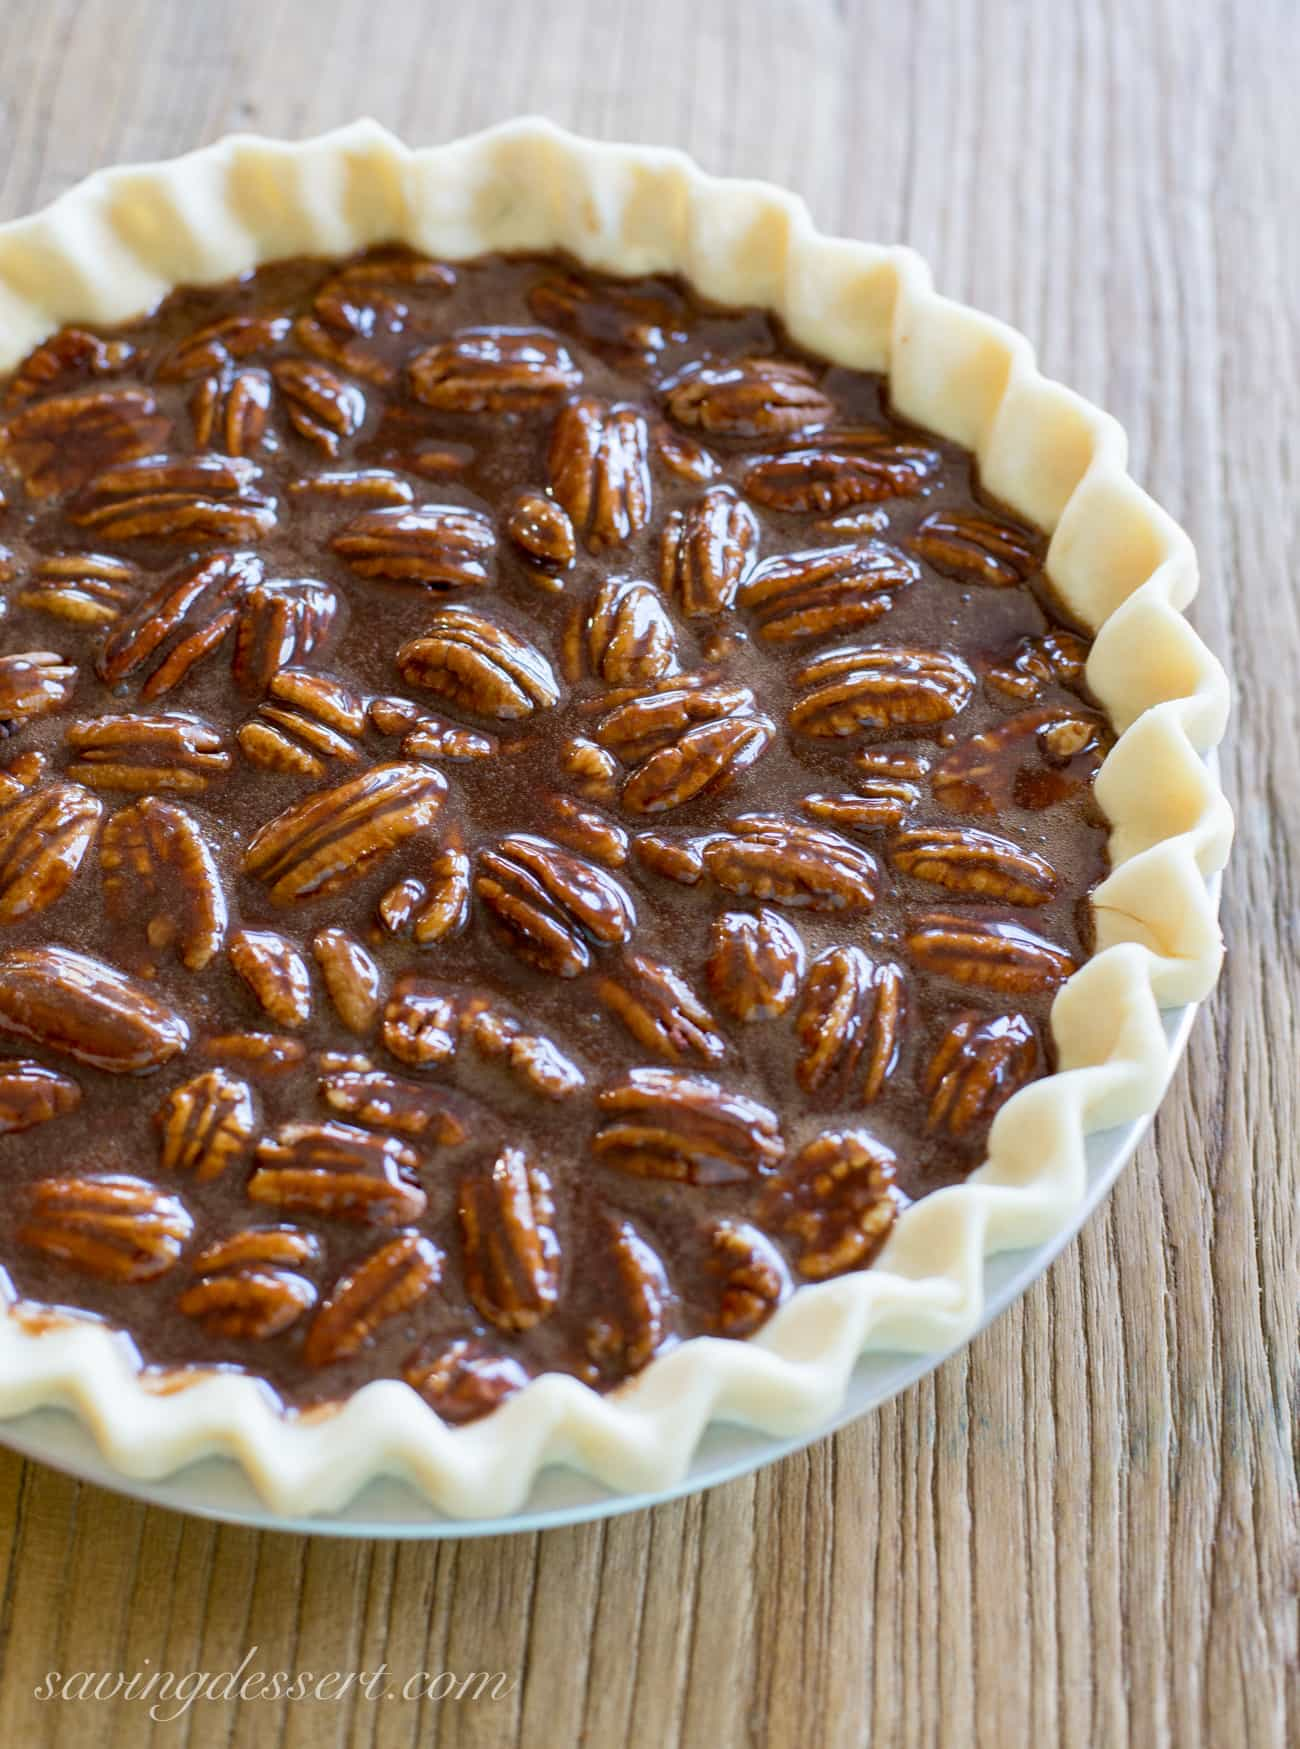 3. Chocolate Pecan Pie - Saving Room for Dessert